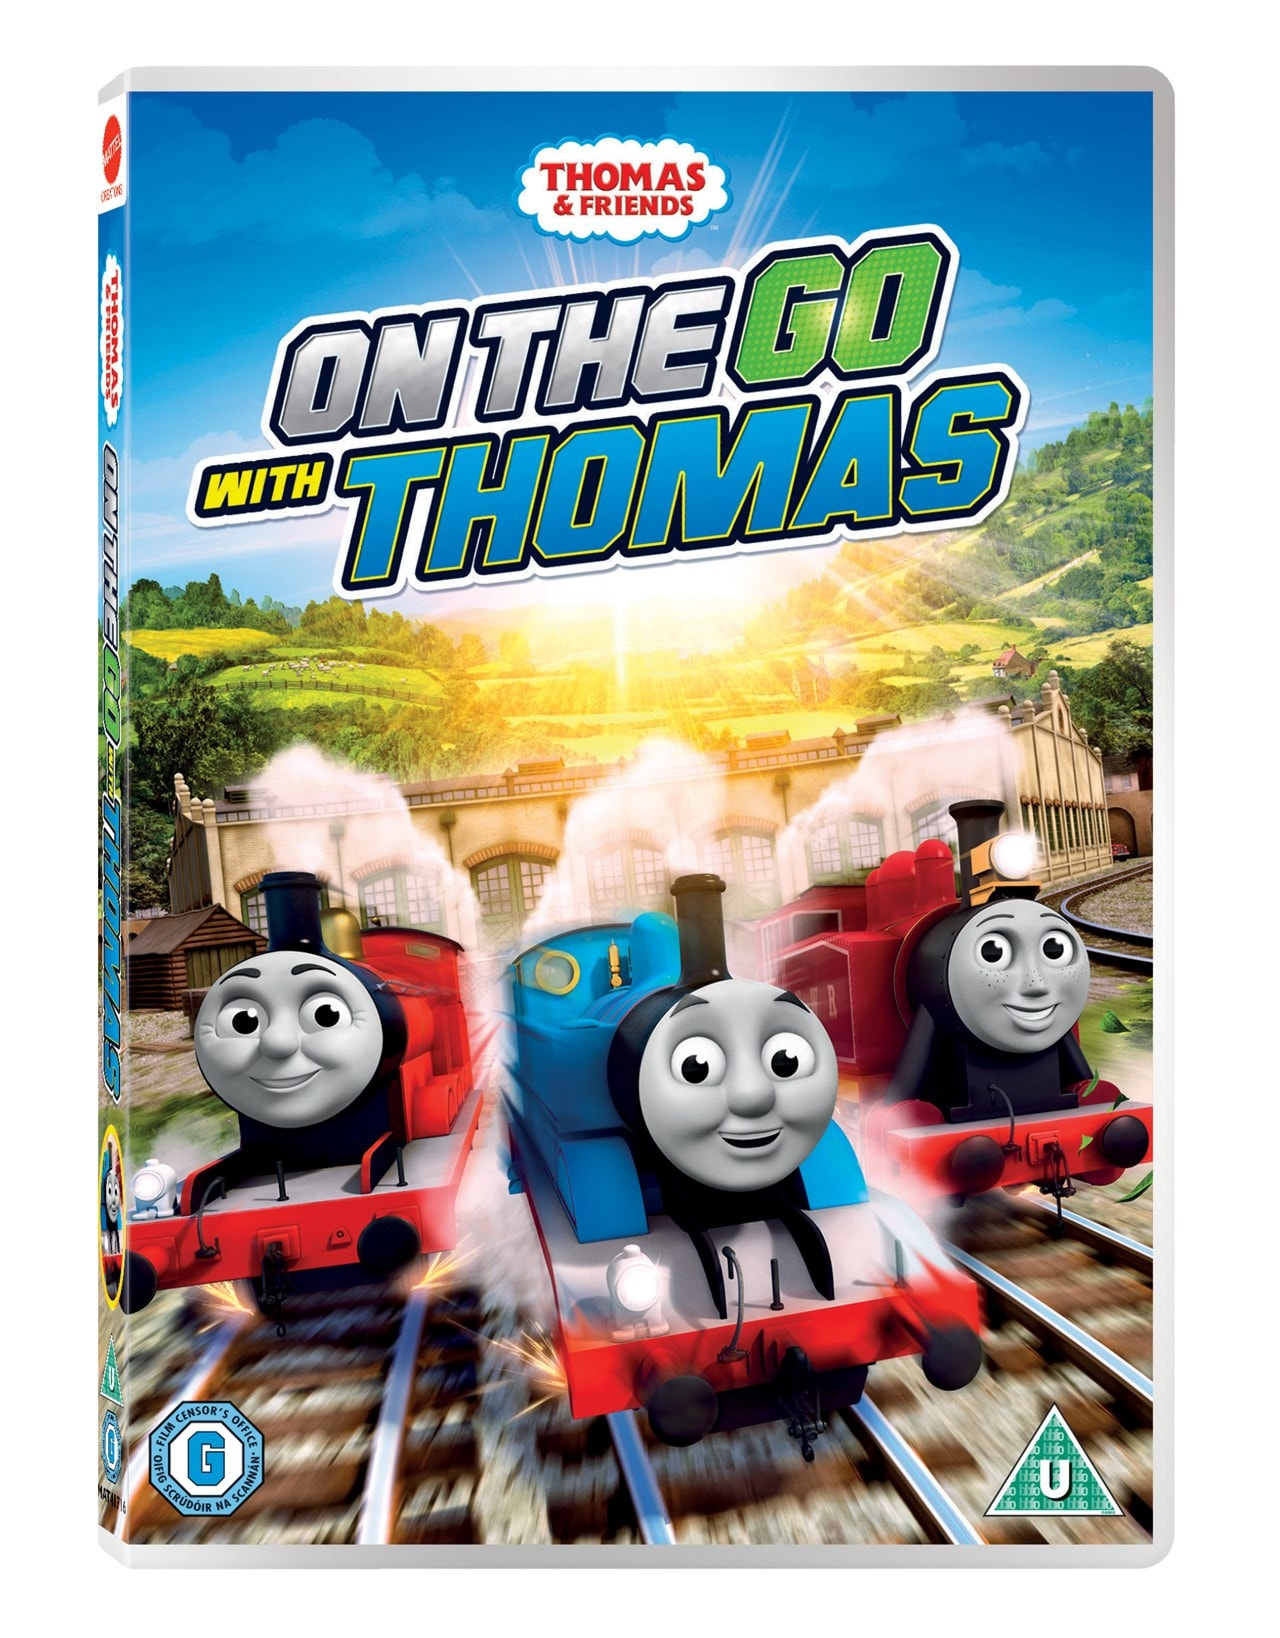 Thomas & Friends: On the Go With Thomas - 2